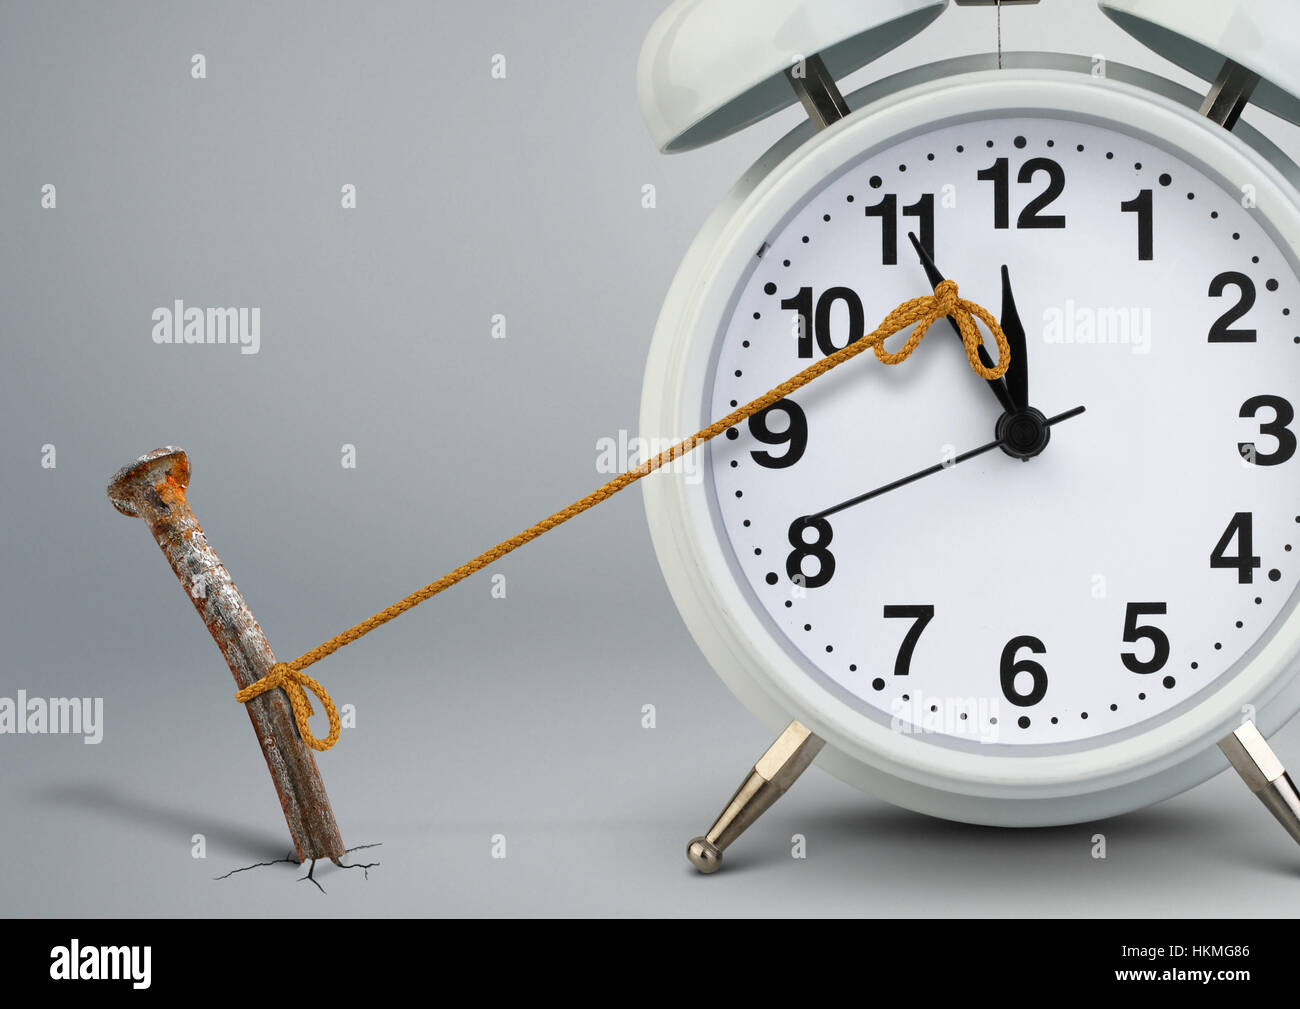 Time on clock stop by nail, delay concept Stock Photo